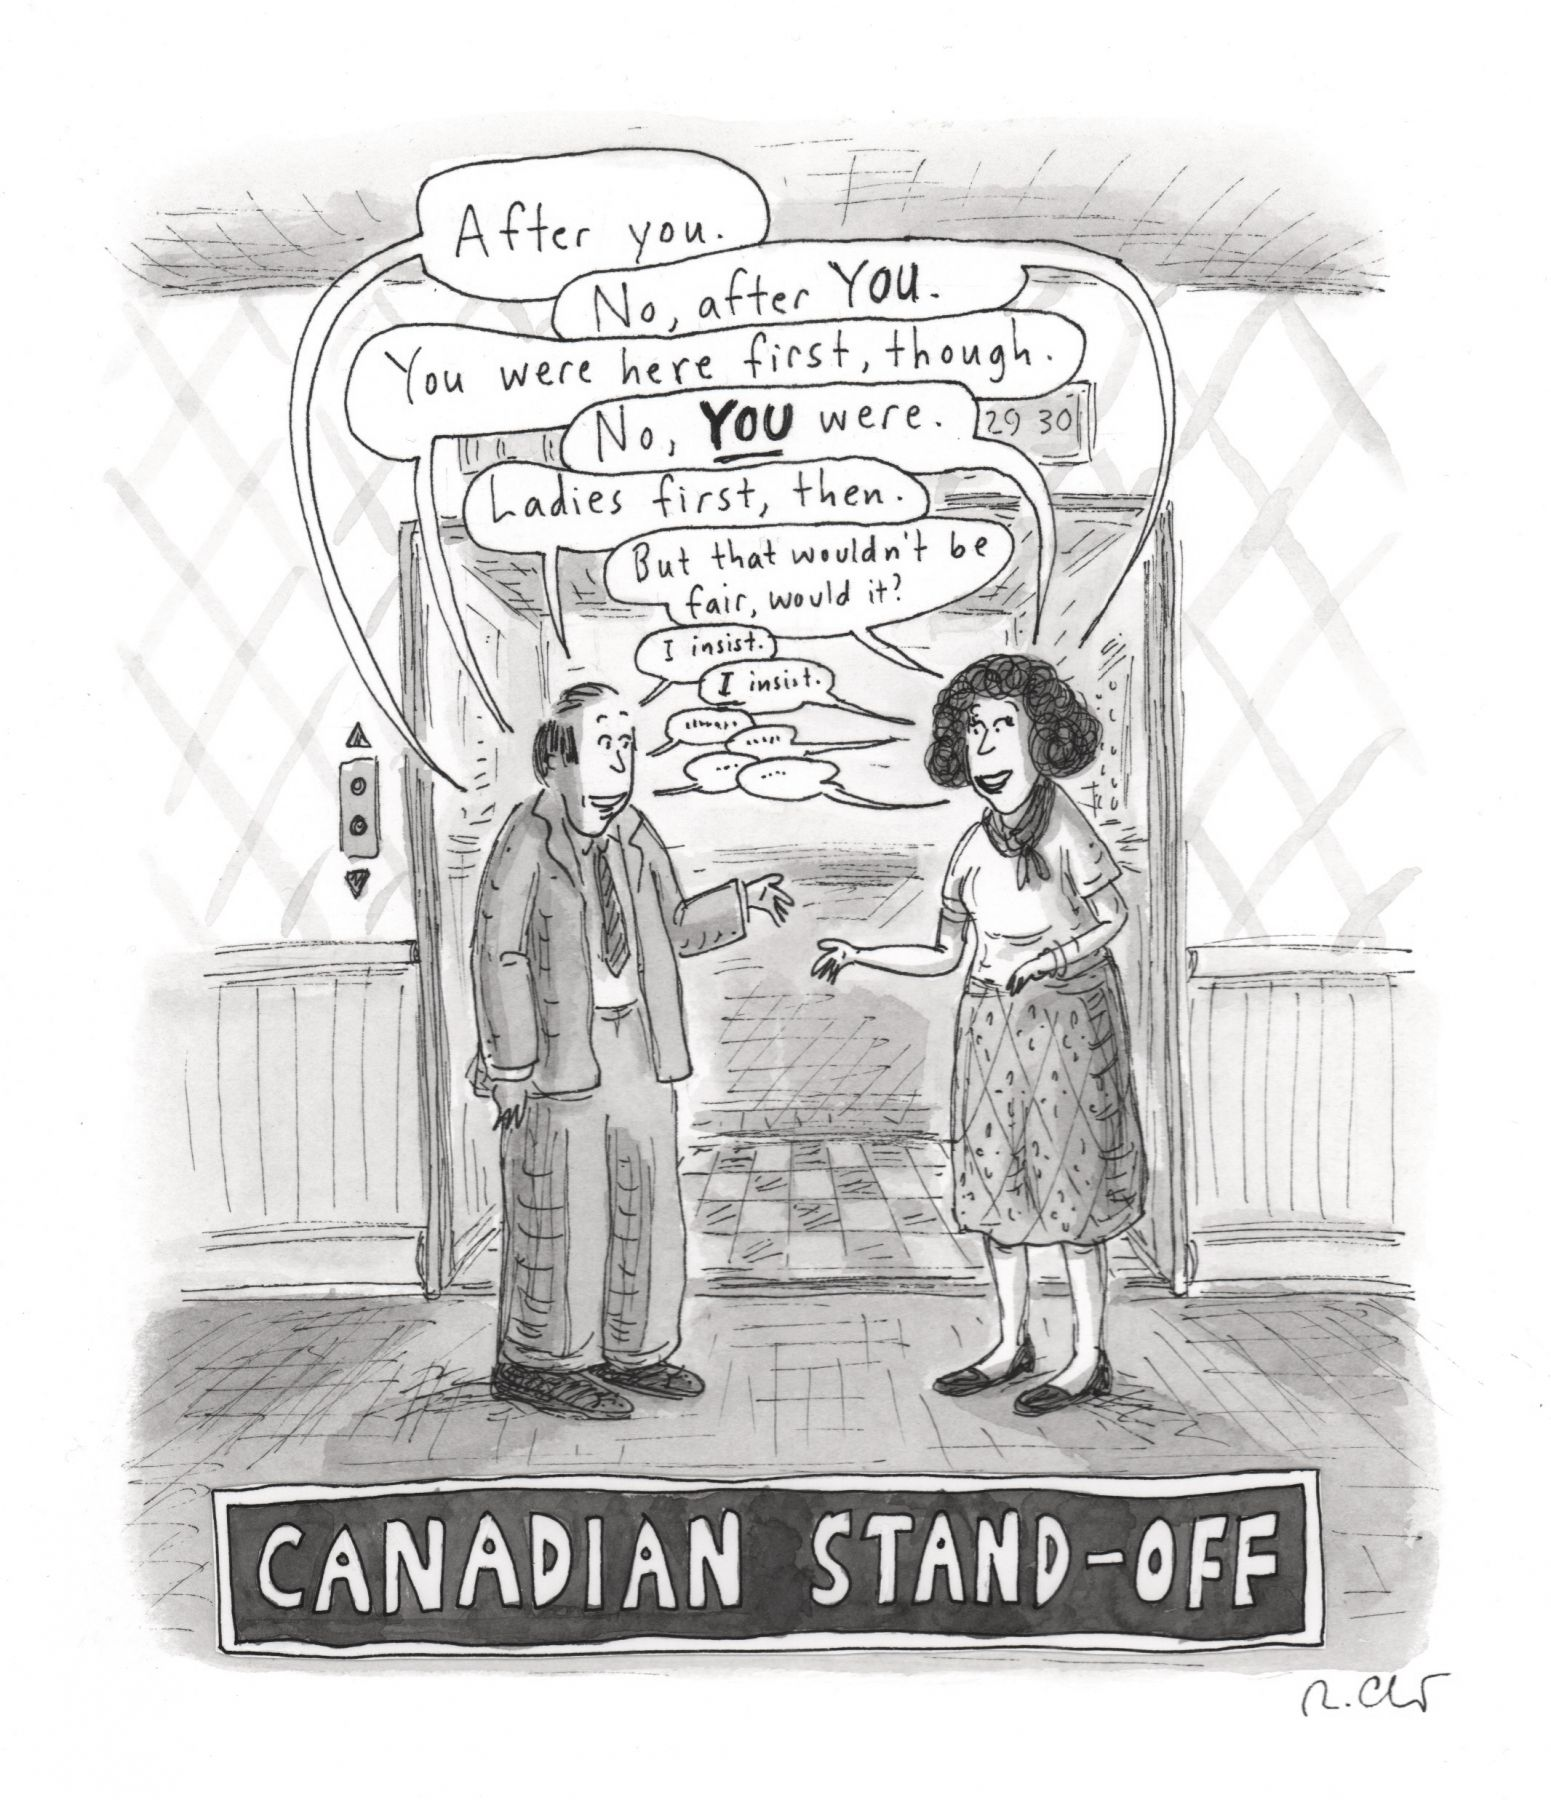 Roz Chast, Canadian Stand-off, published November 26, 2012